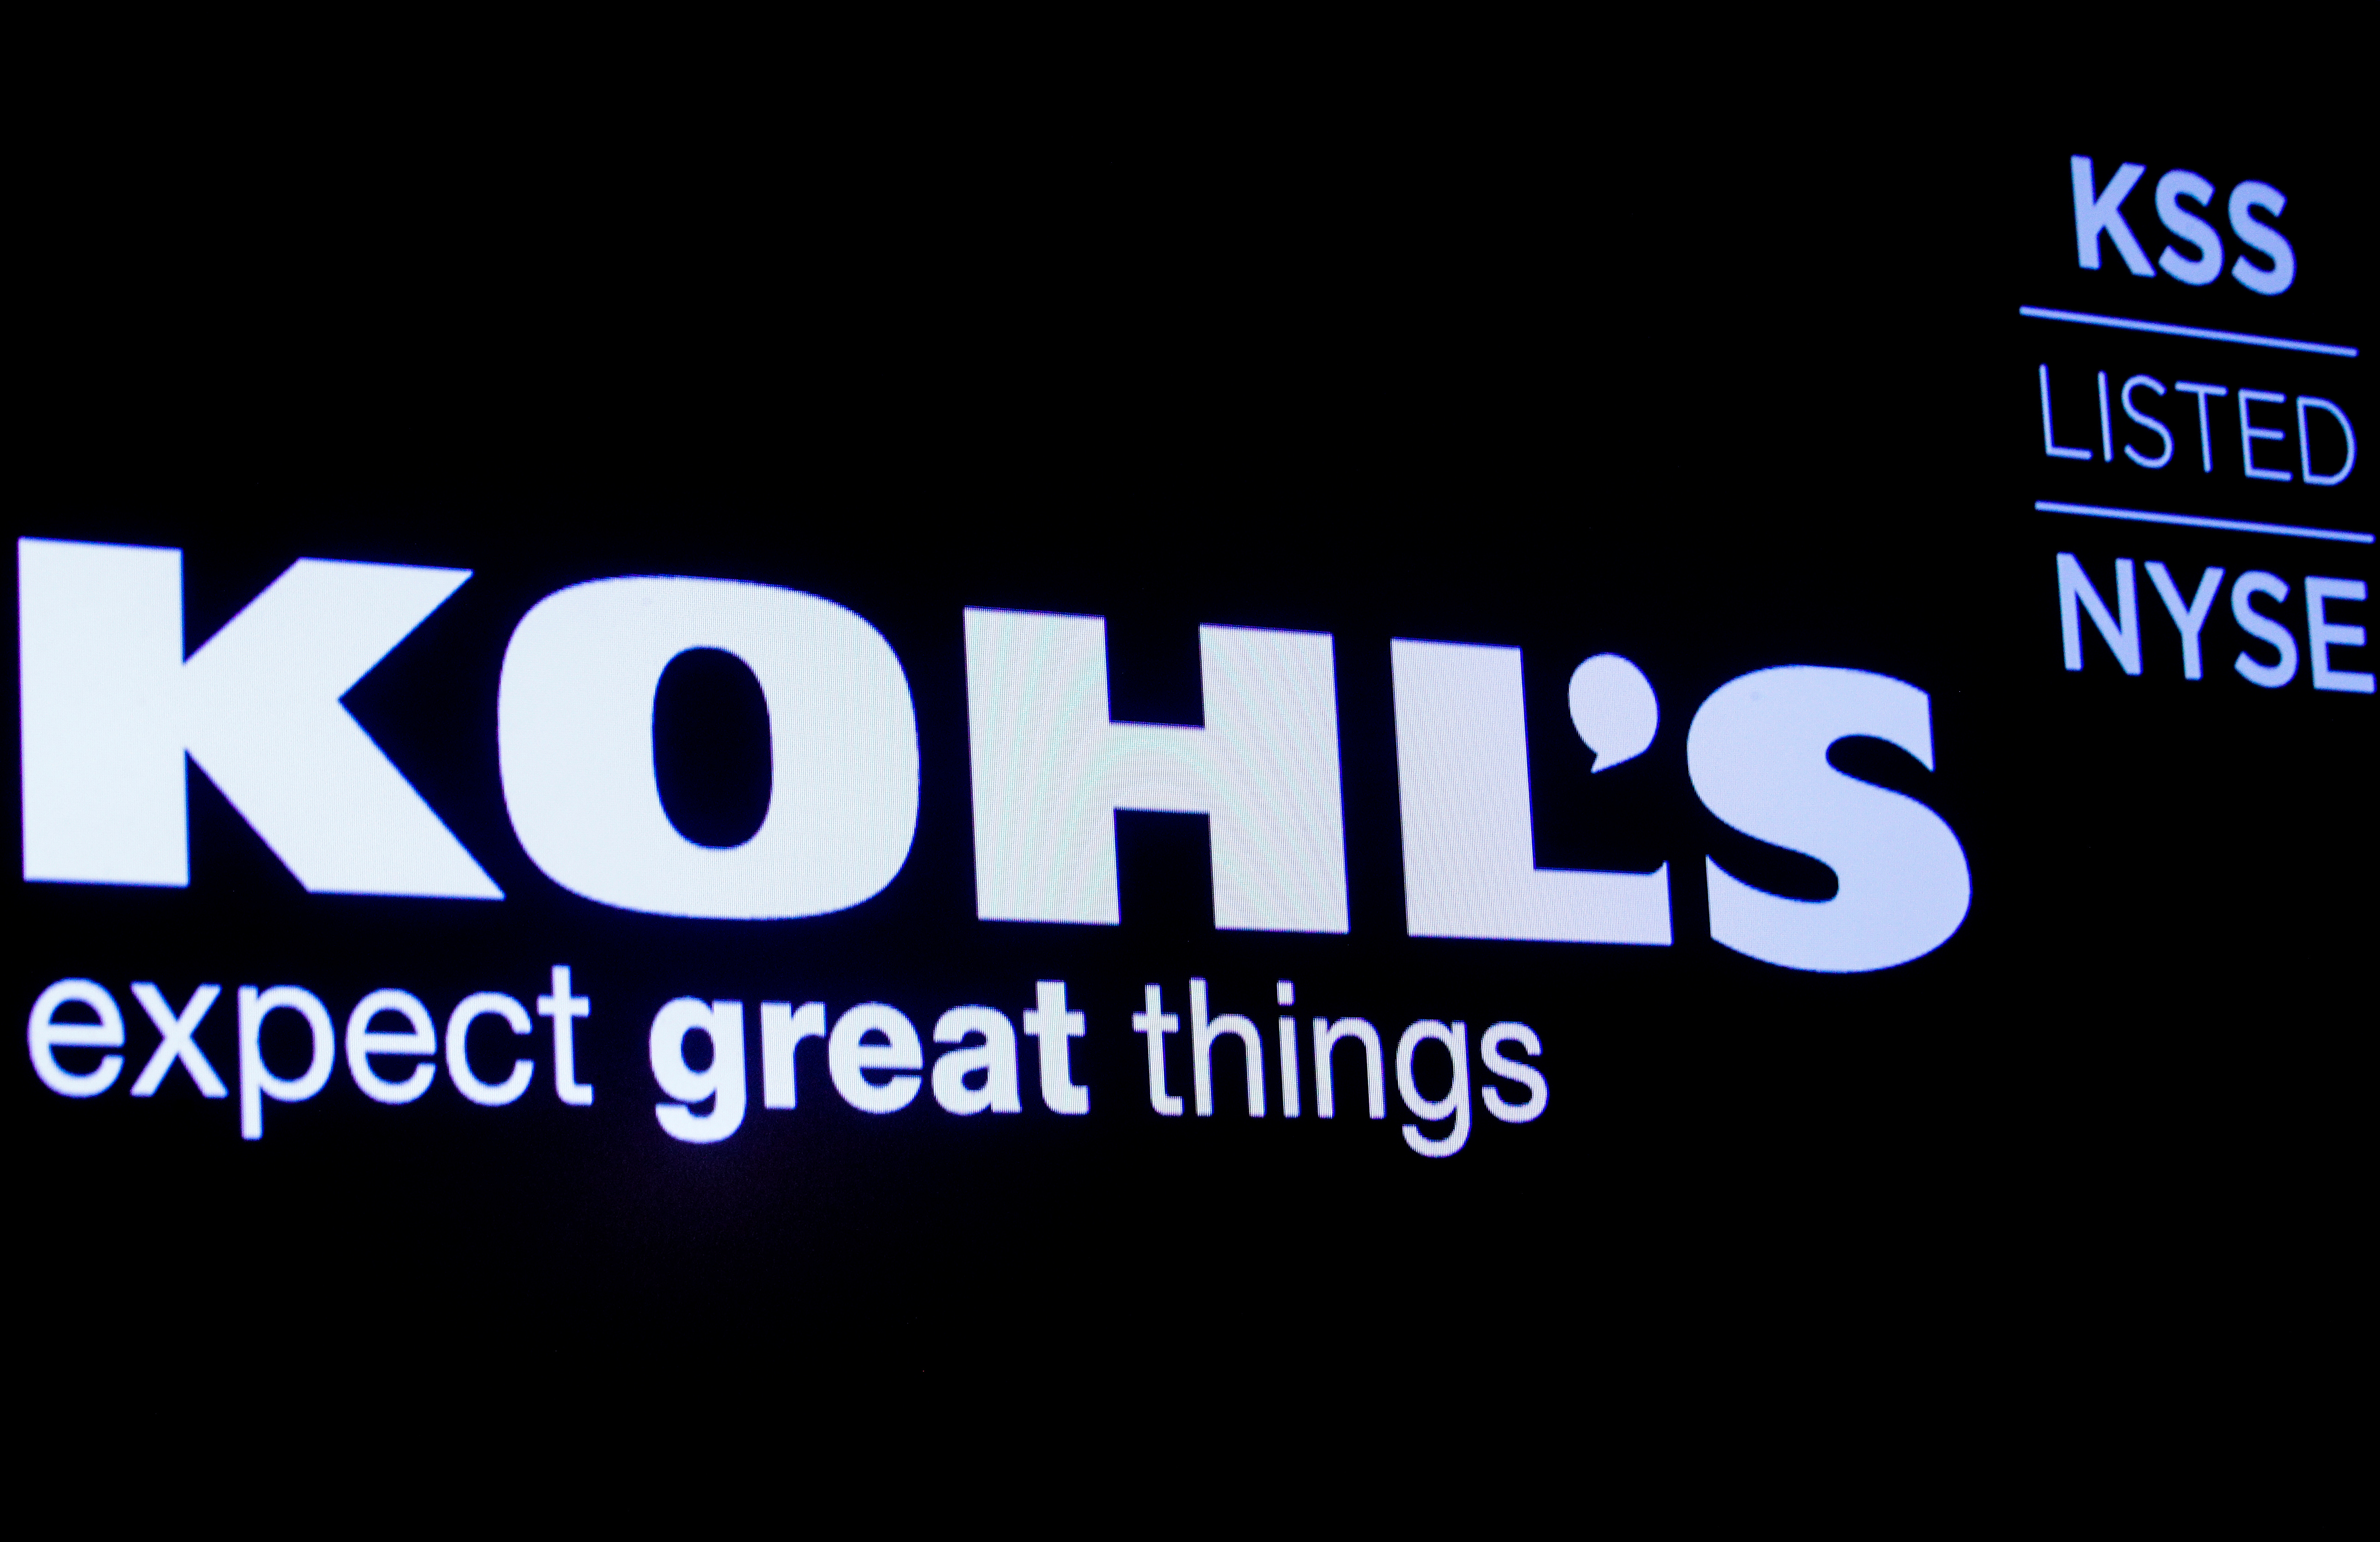 The logo and trading informations for Kohl's  is displayed on a screen on the floor at the New York Stock Exchange (NYSE) in New York, U.S., January 13, 2020. REUTERS/Brendan McDermid